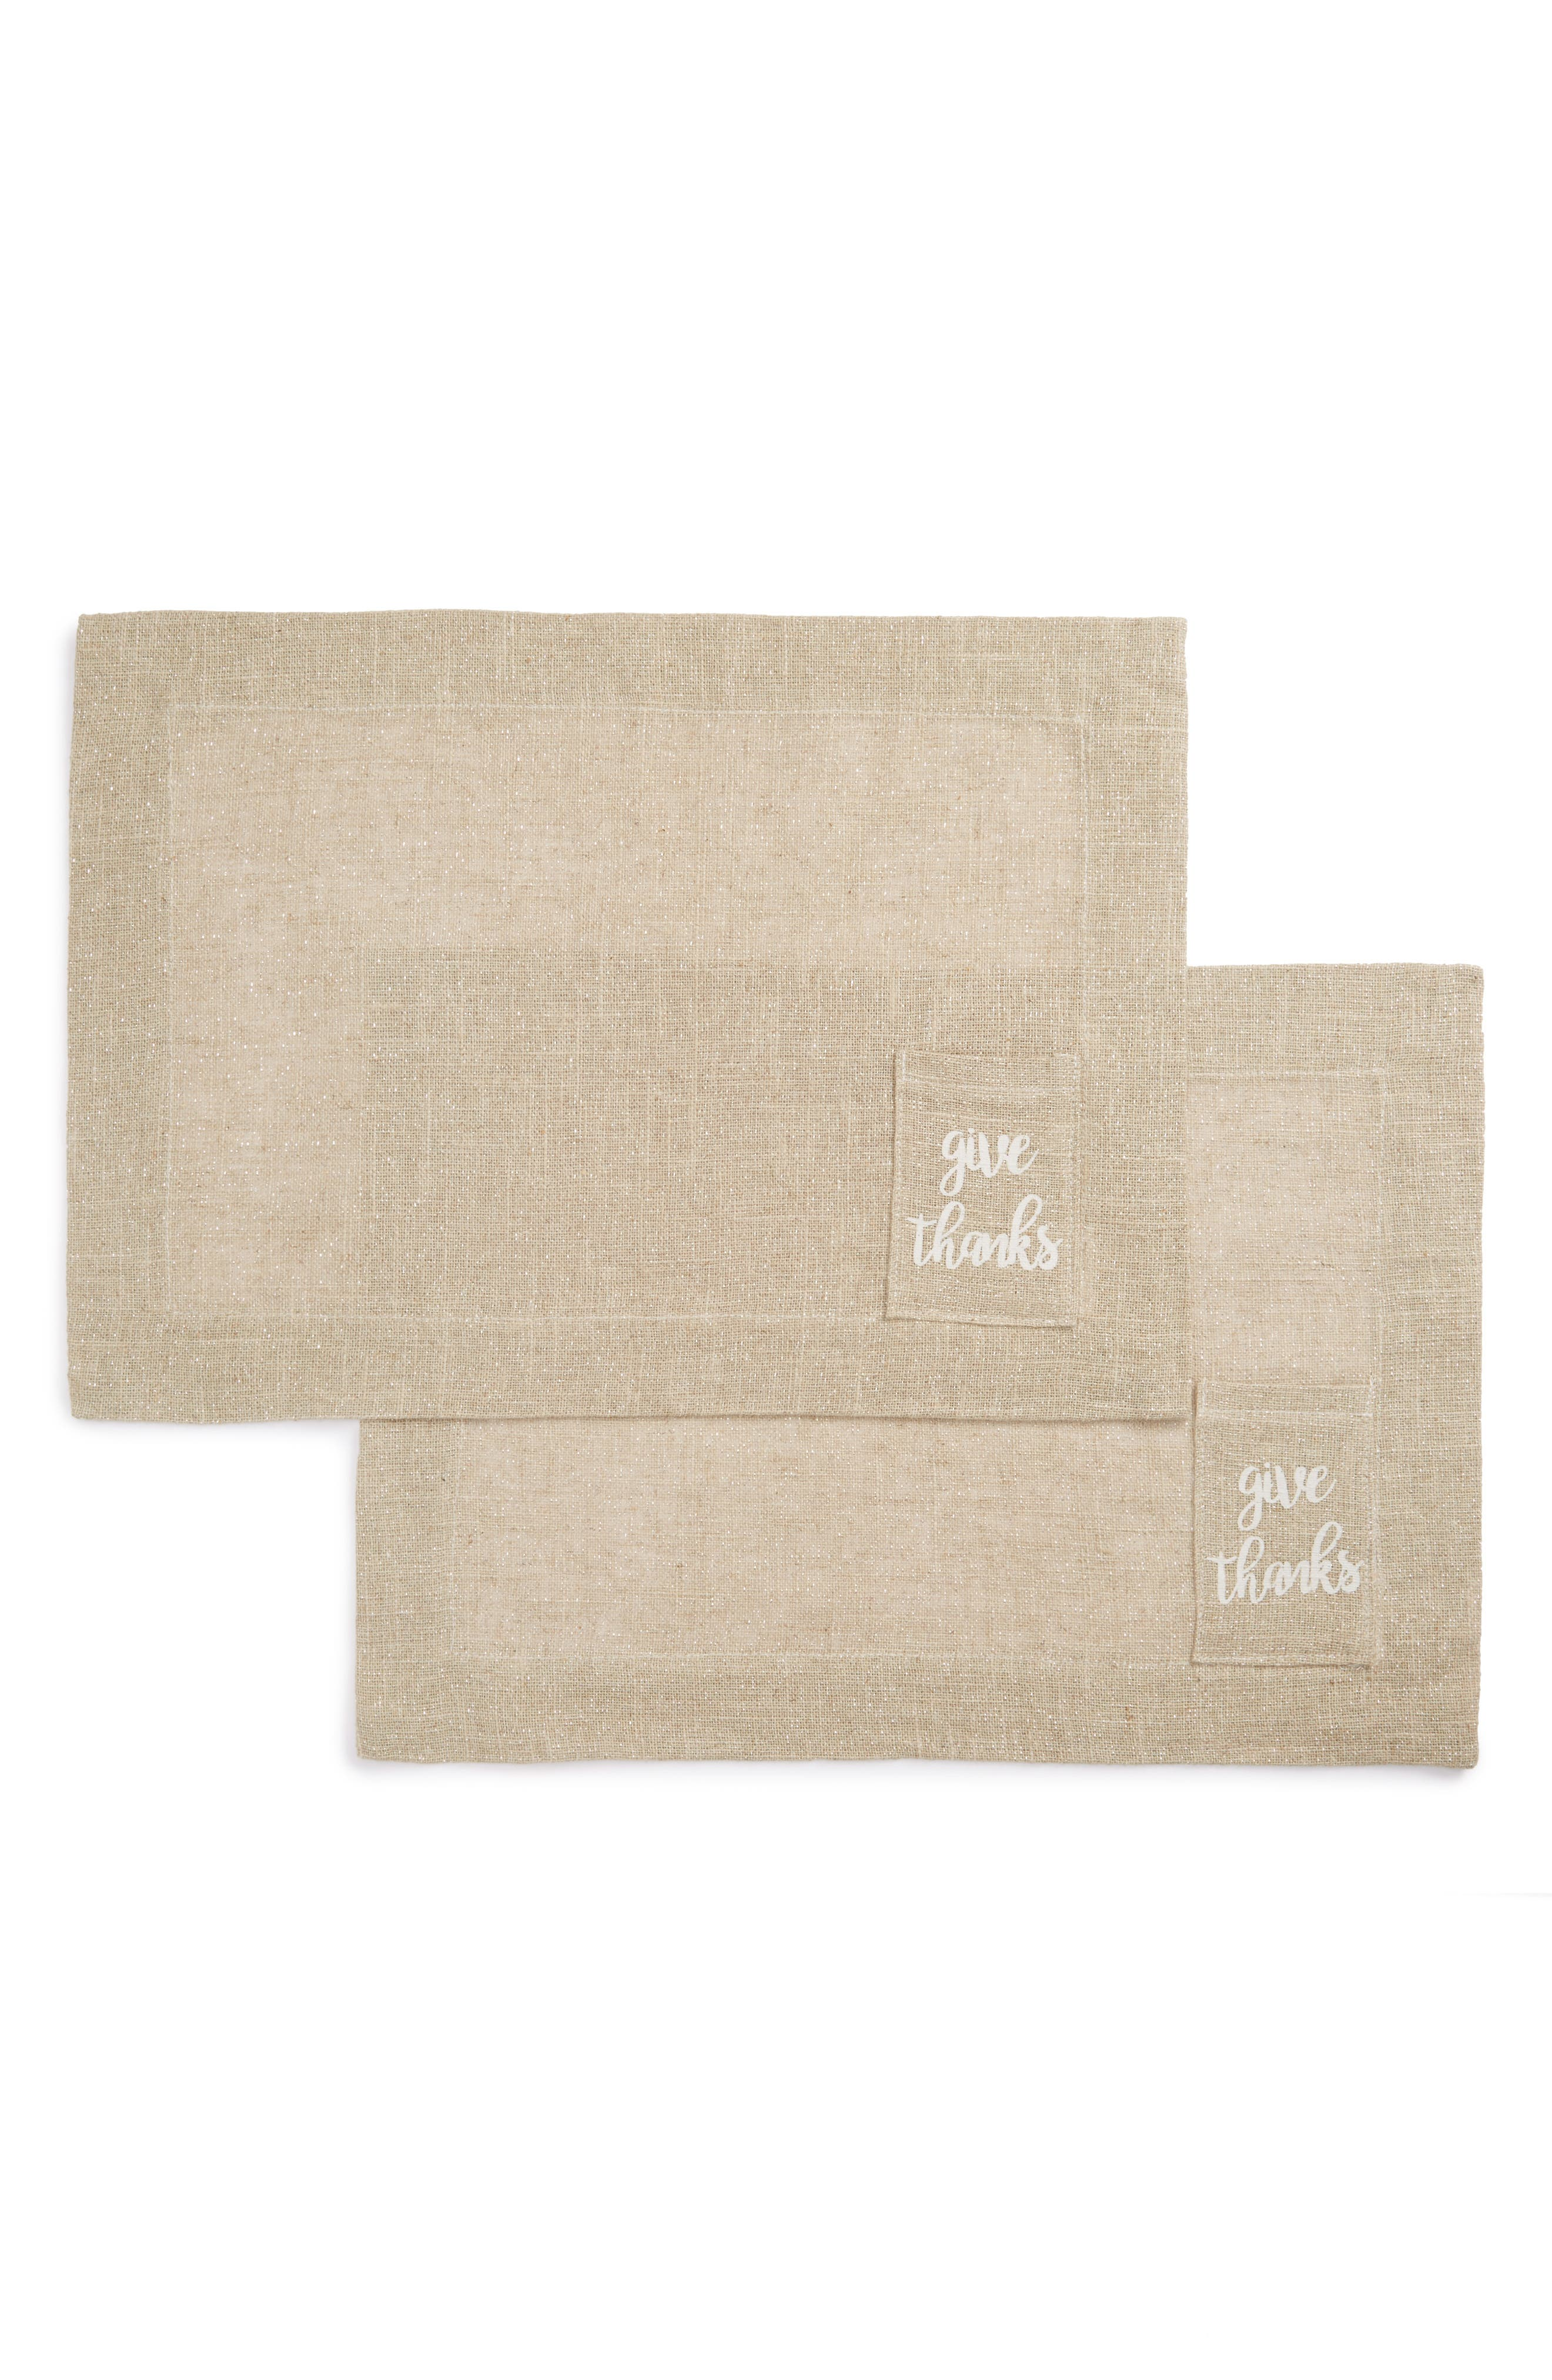 Main Image - Levtex Give Thanks Set of 2 Placemats